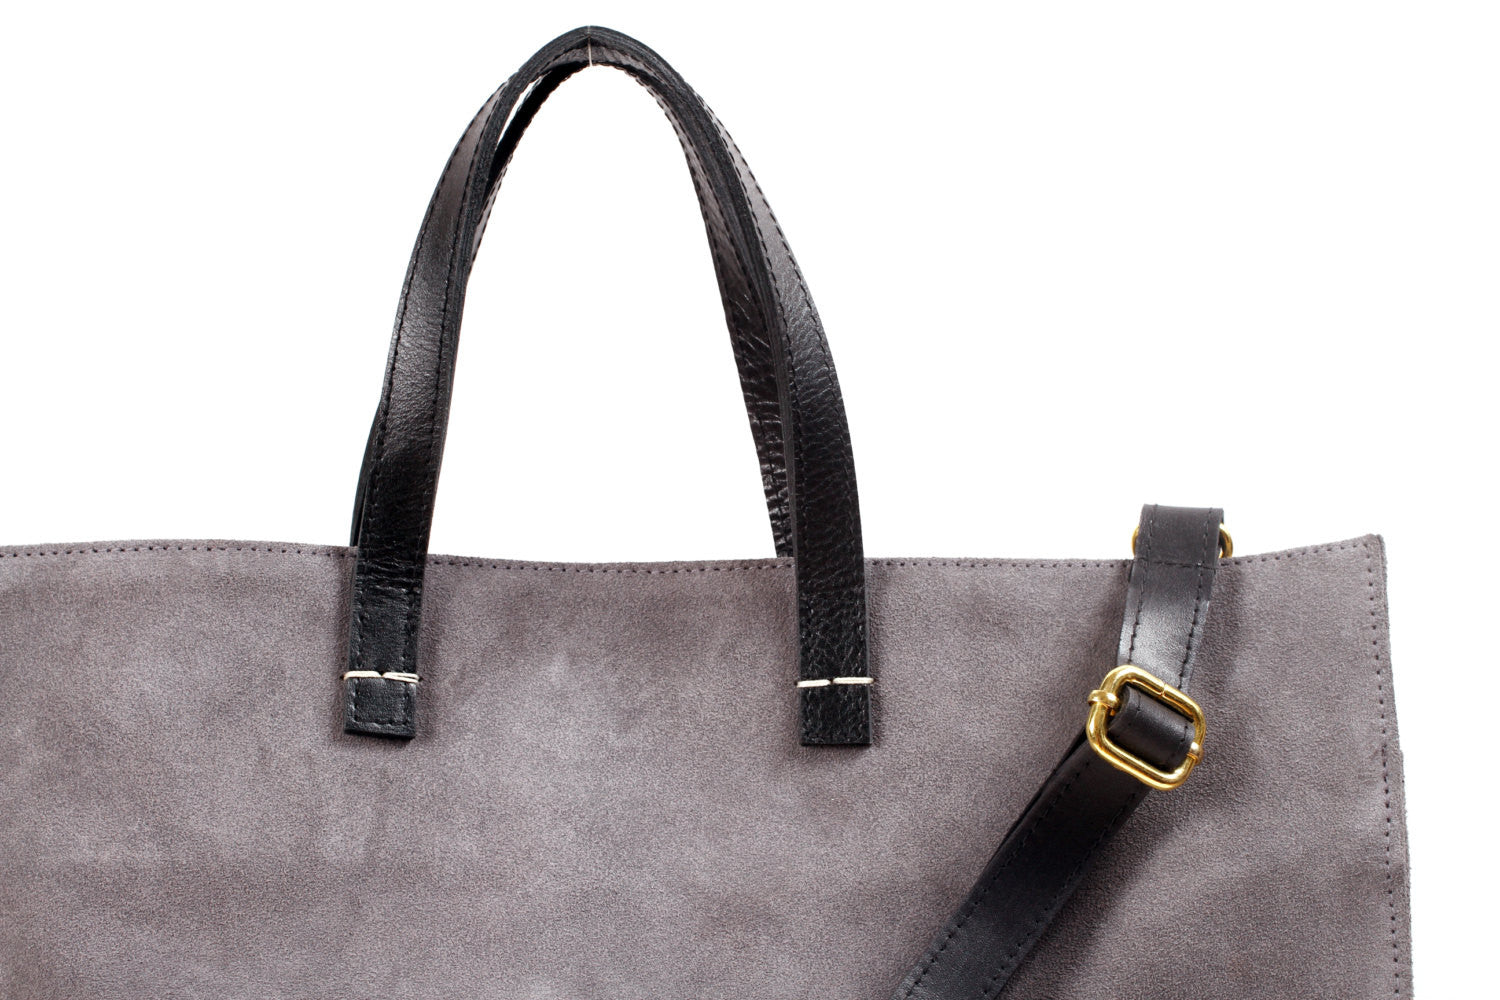 Tote-Suede Leather Handbag